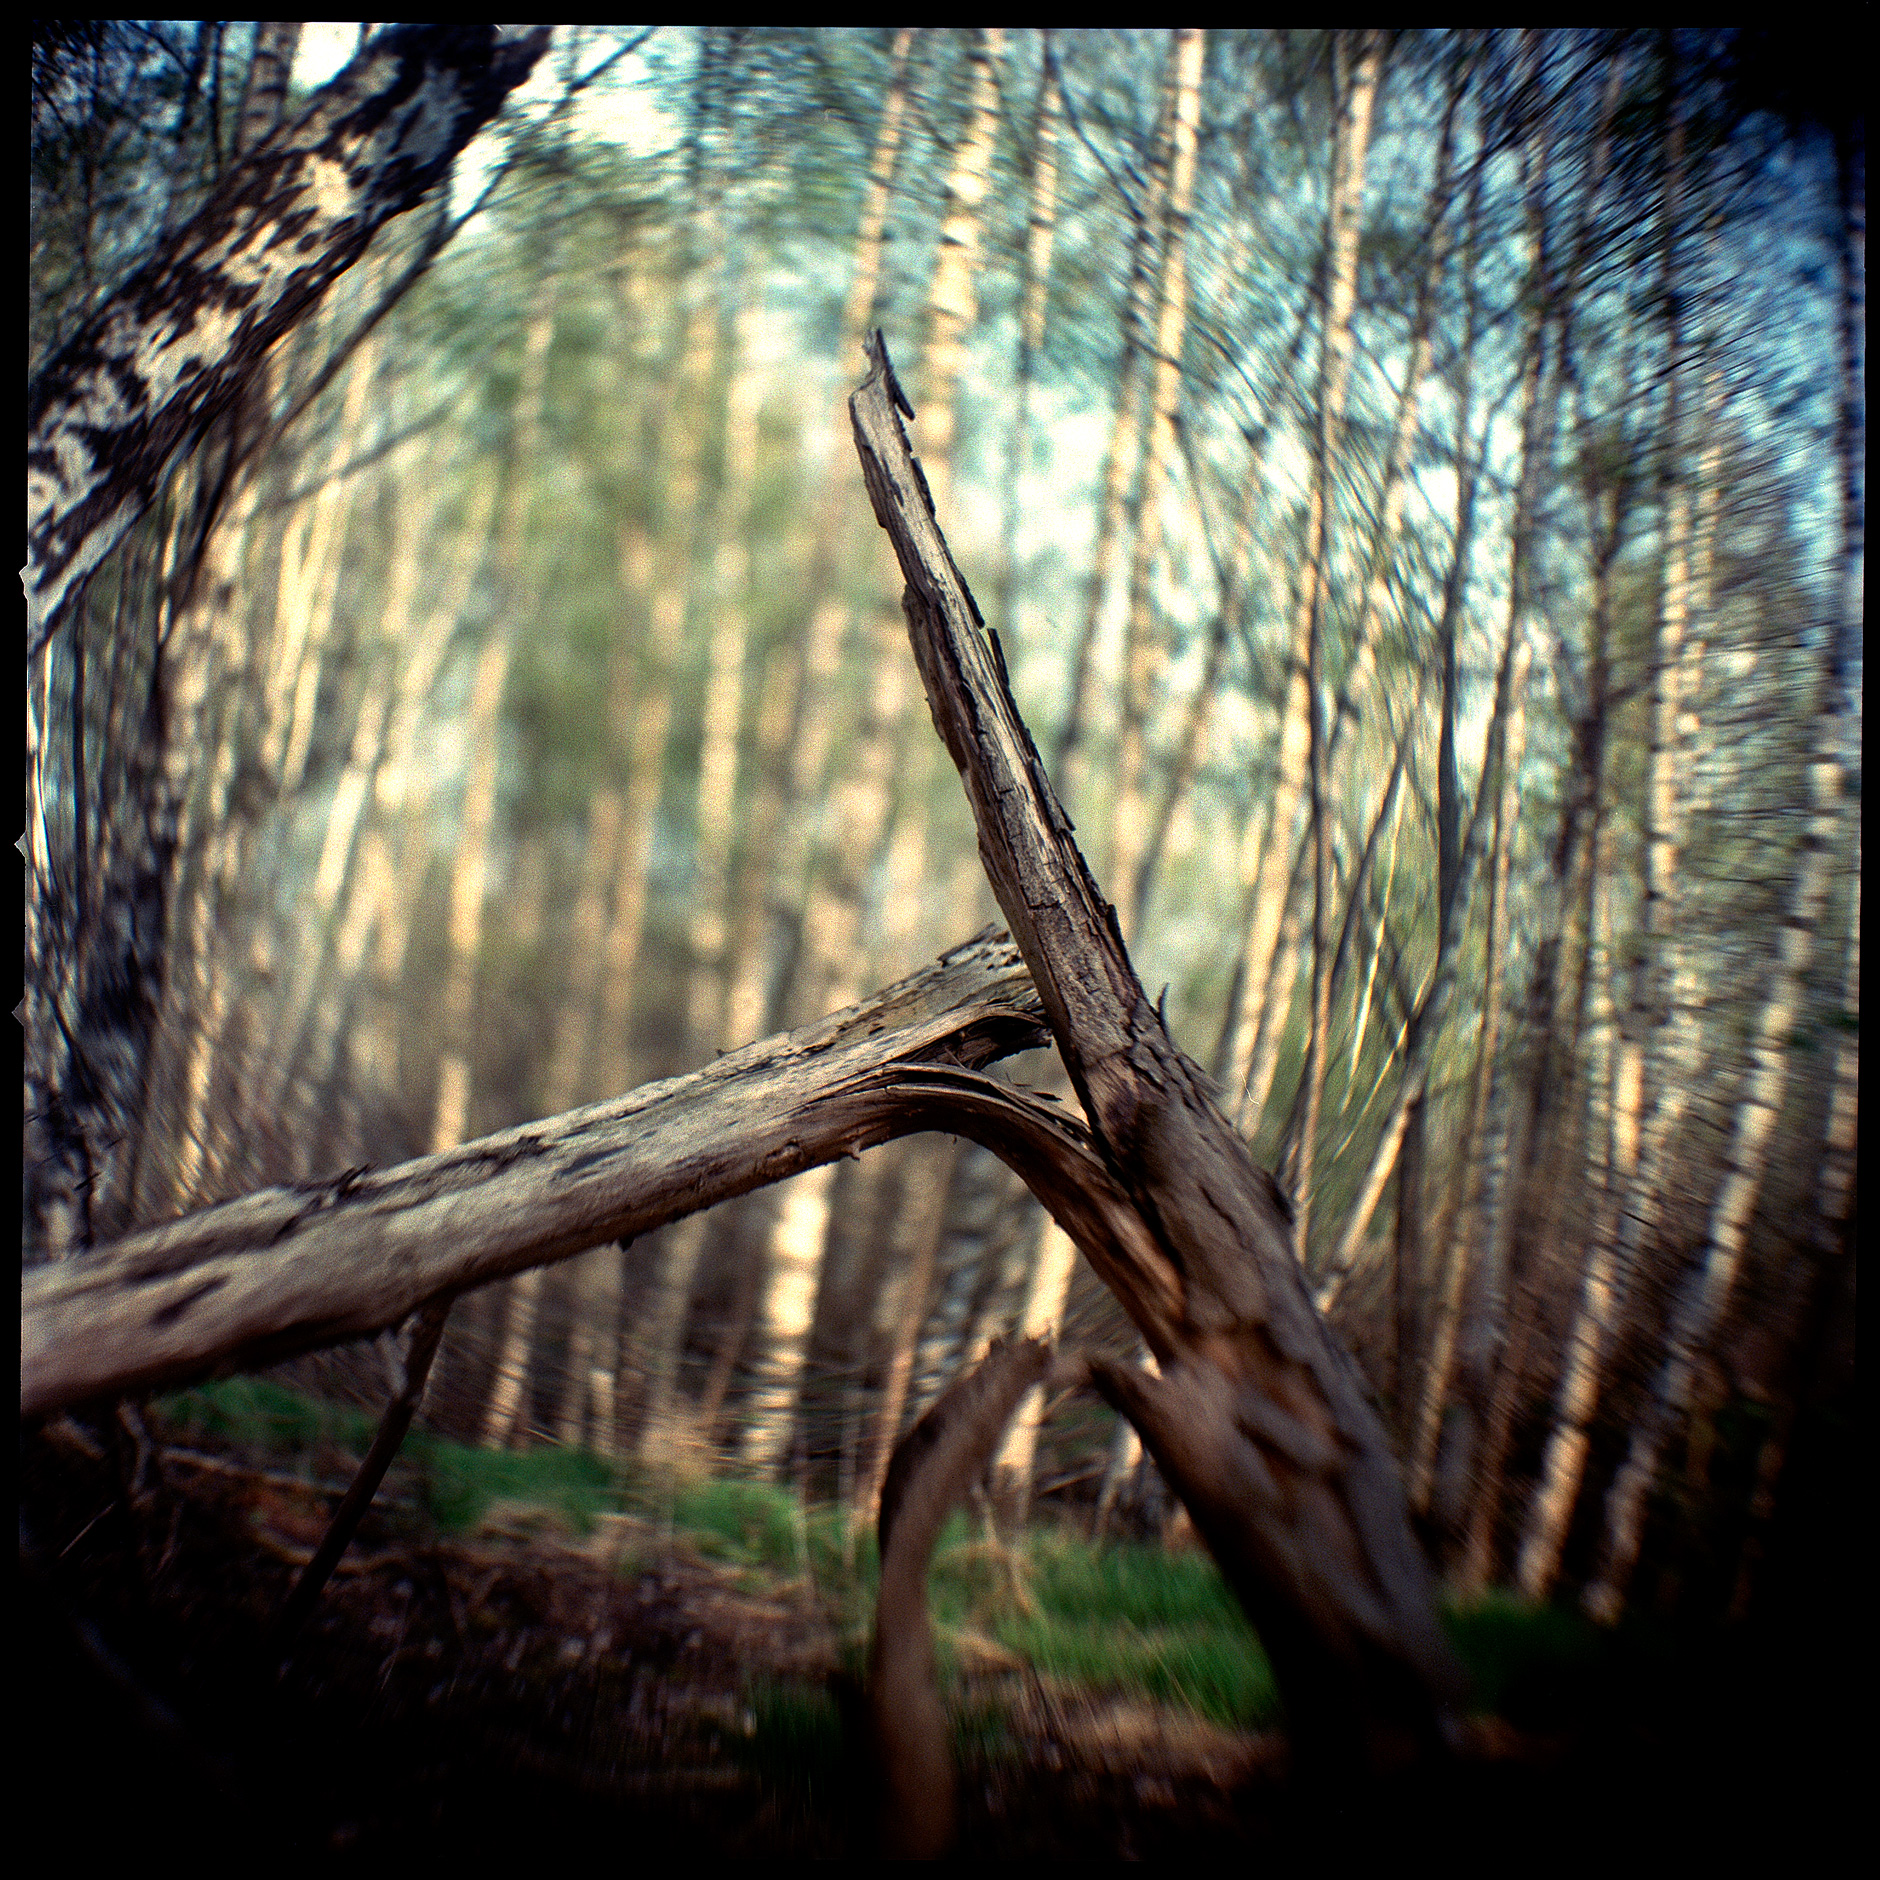 6x6 image shot with Hasselblad 500 camera color with soft focus